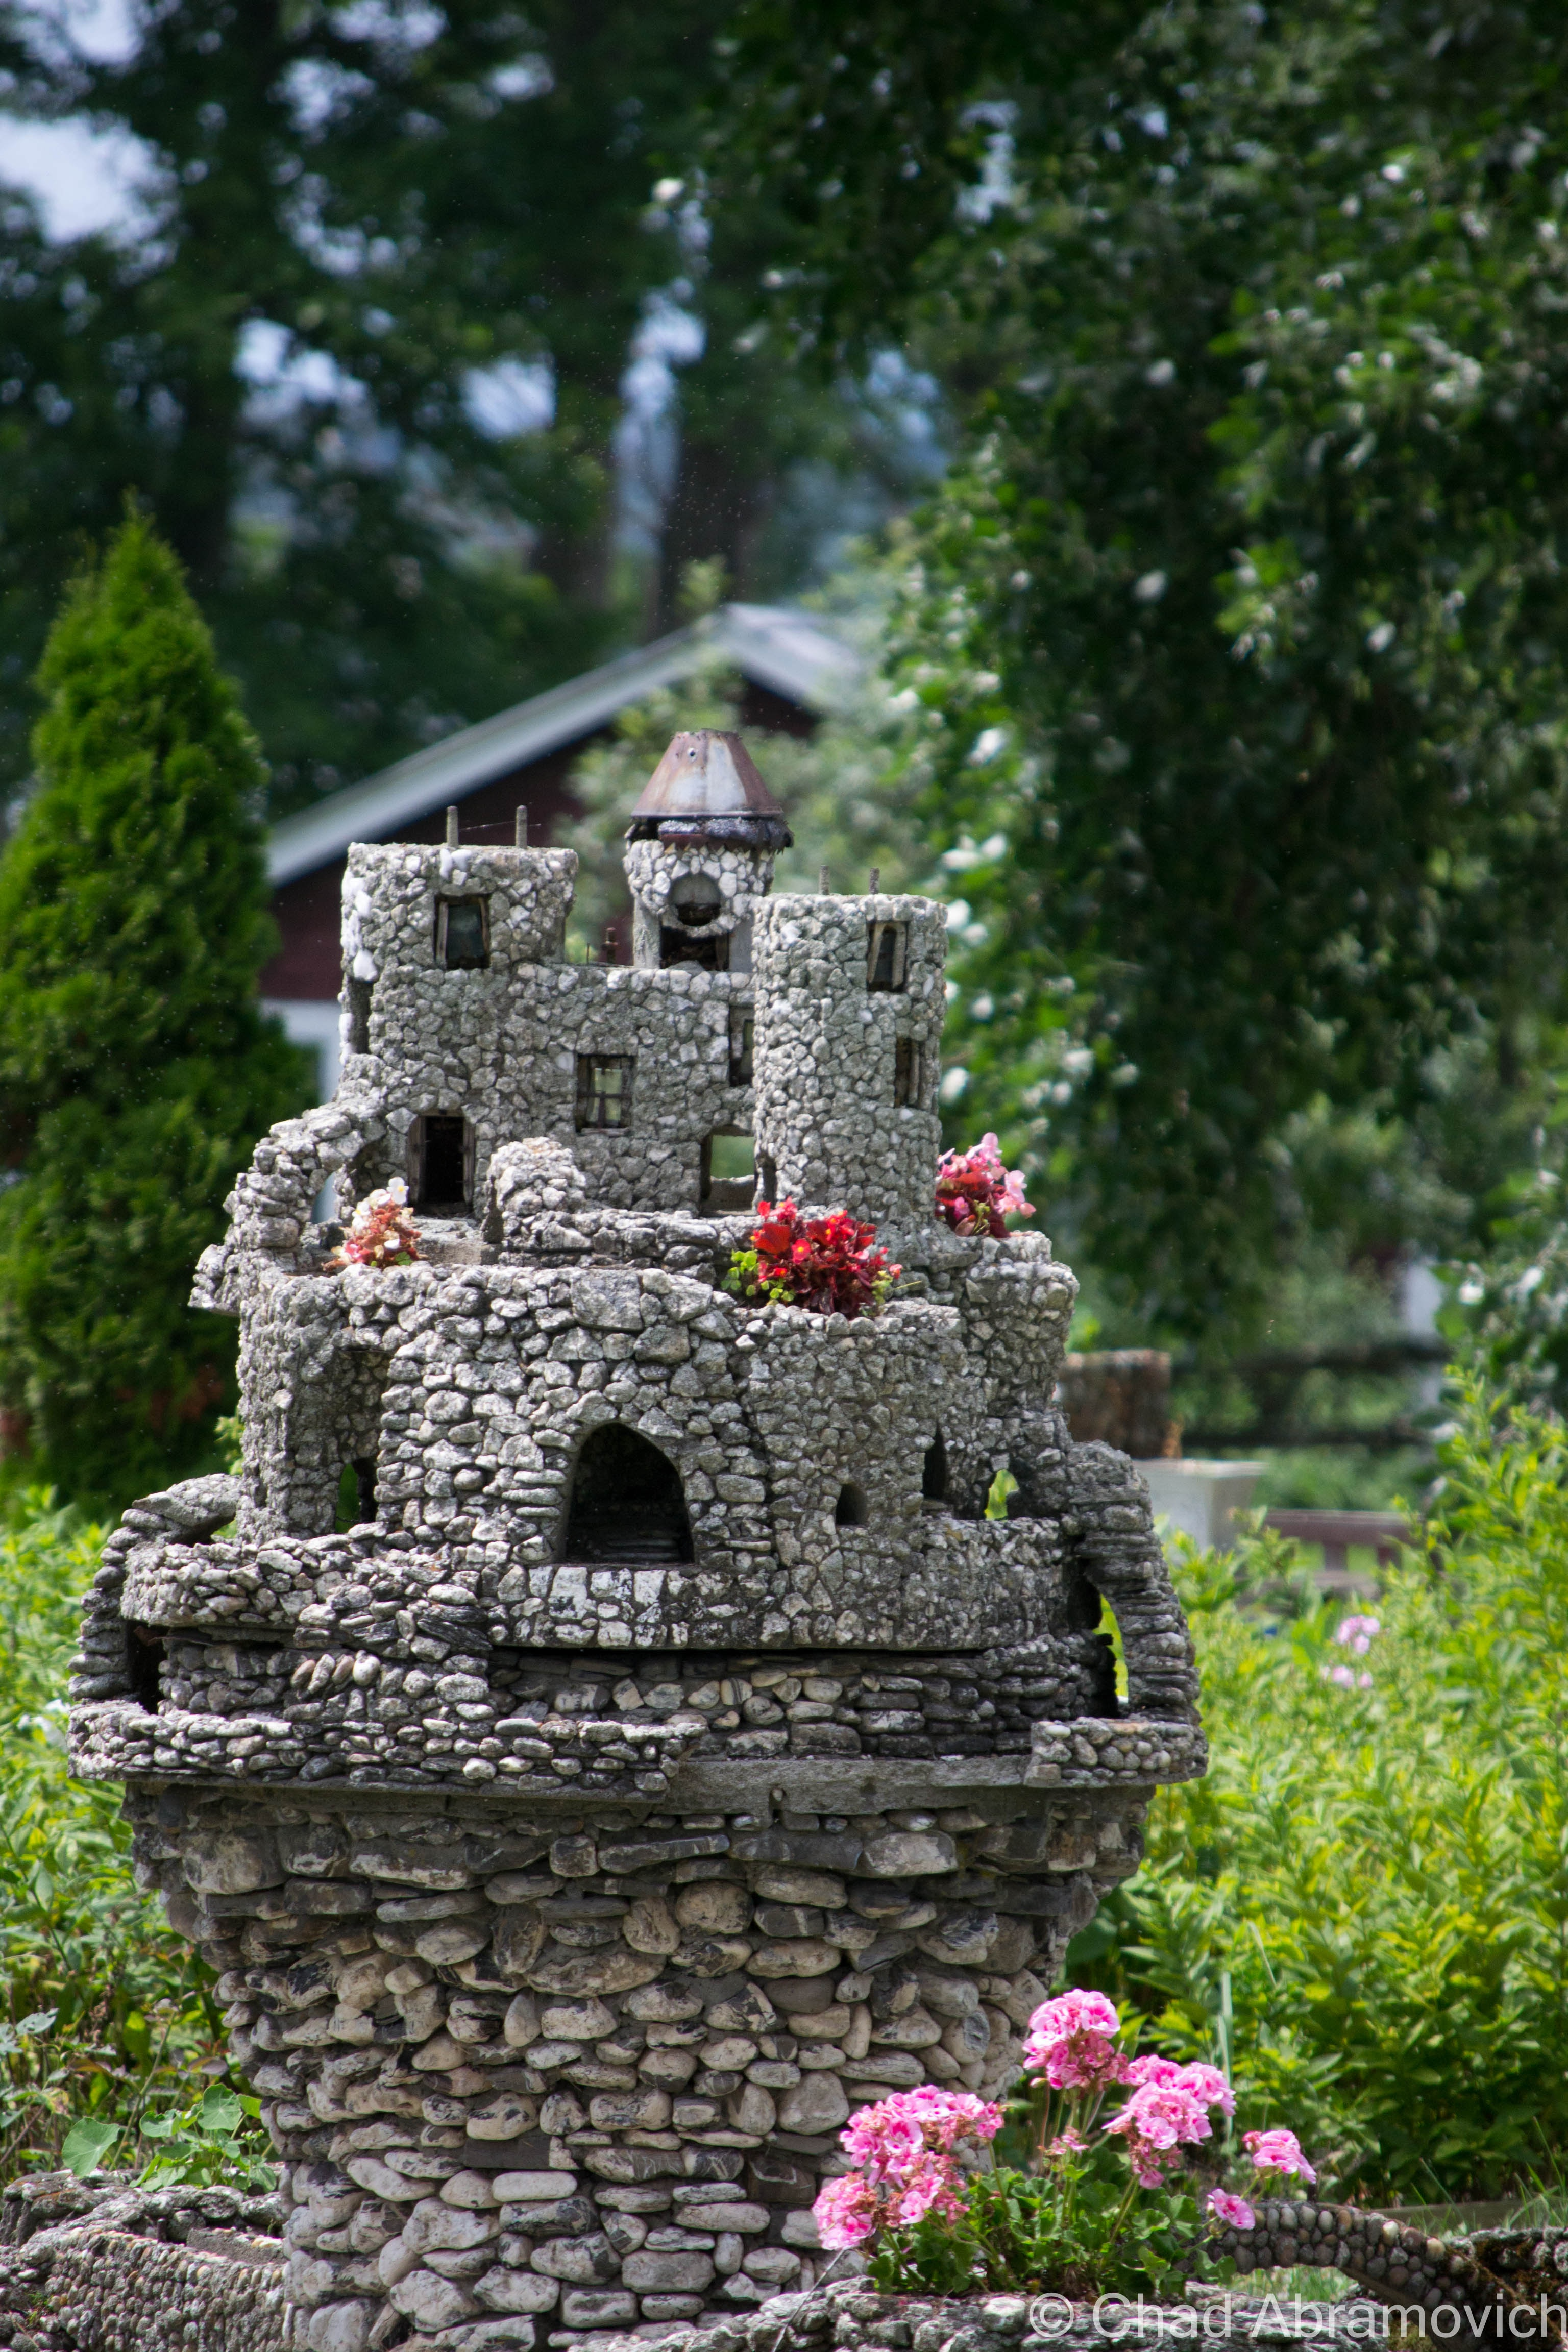 One of Harry Barber's castles, as seen in front of The Crescent Bay Bed and Breakfast, on the West Shore Road.